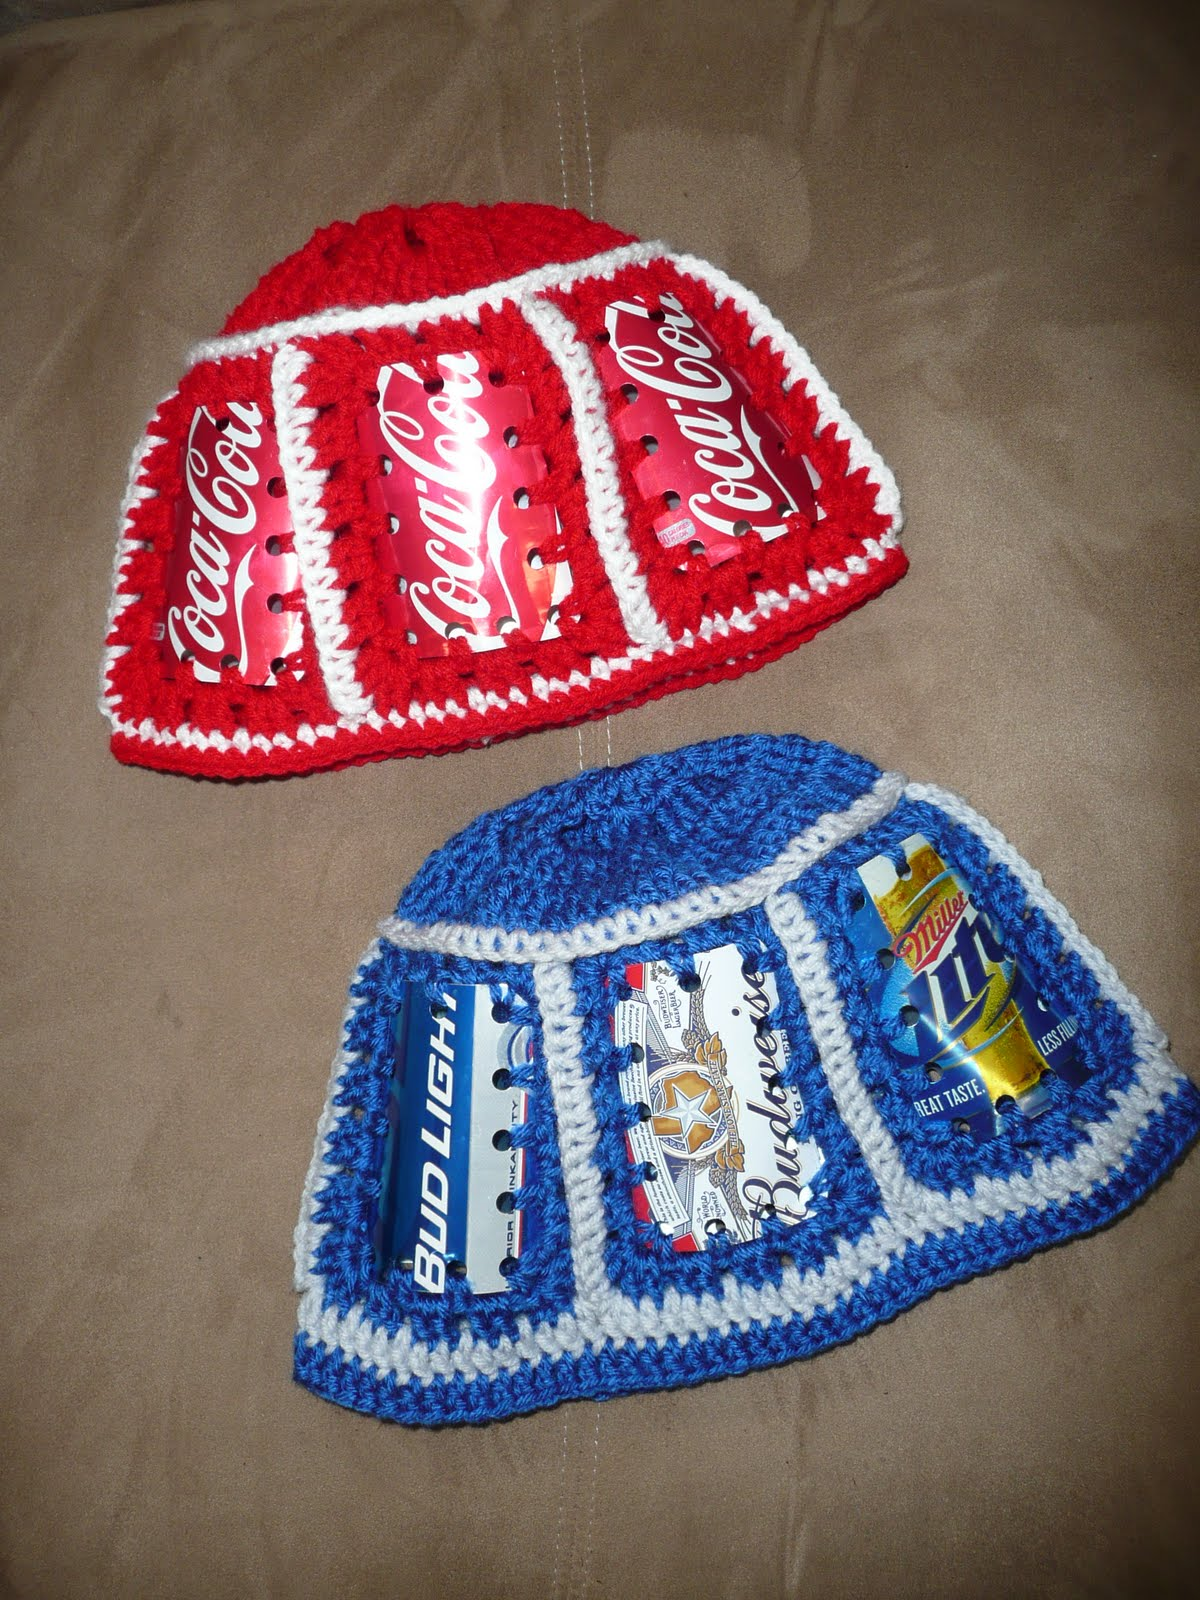 Would like a crochet pattern to make a cowboy beer can hat; Thanks